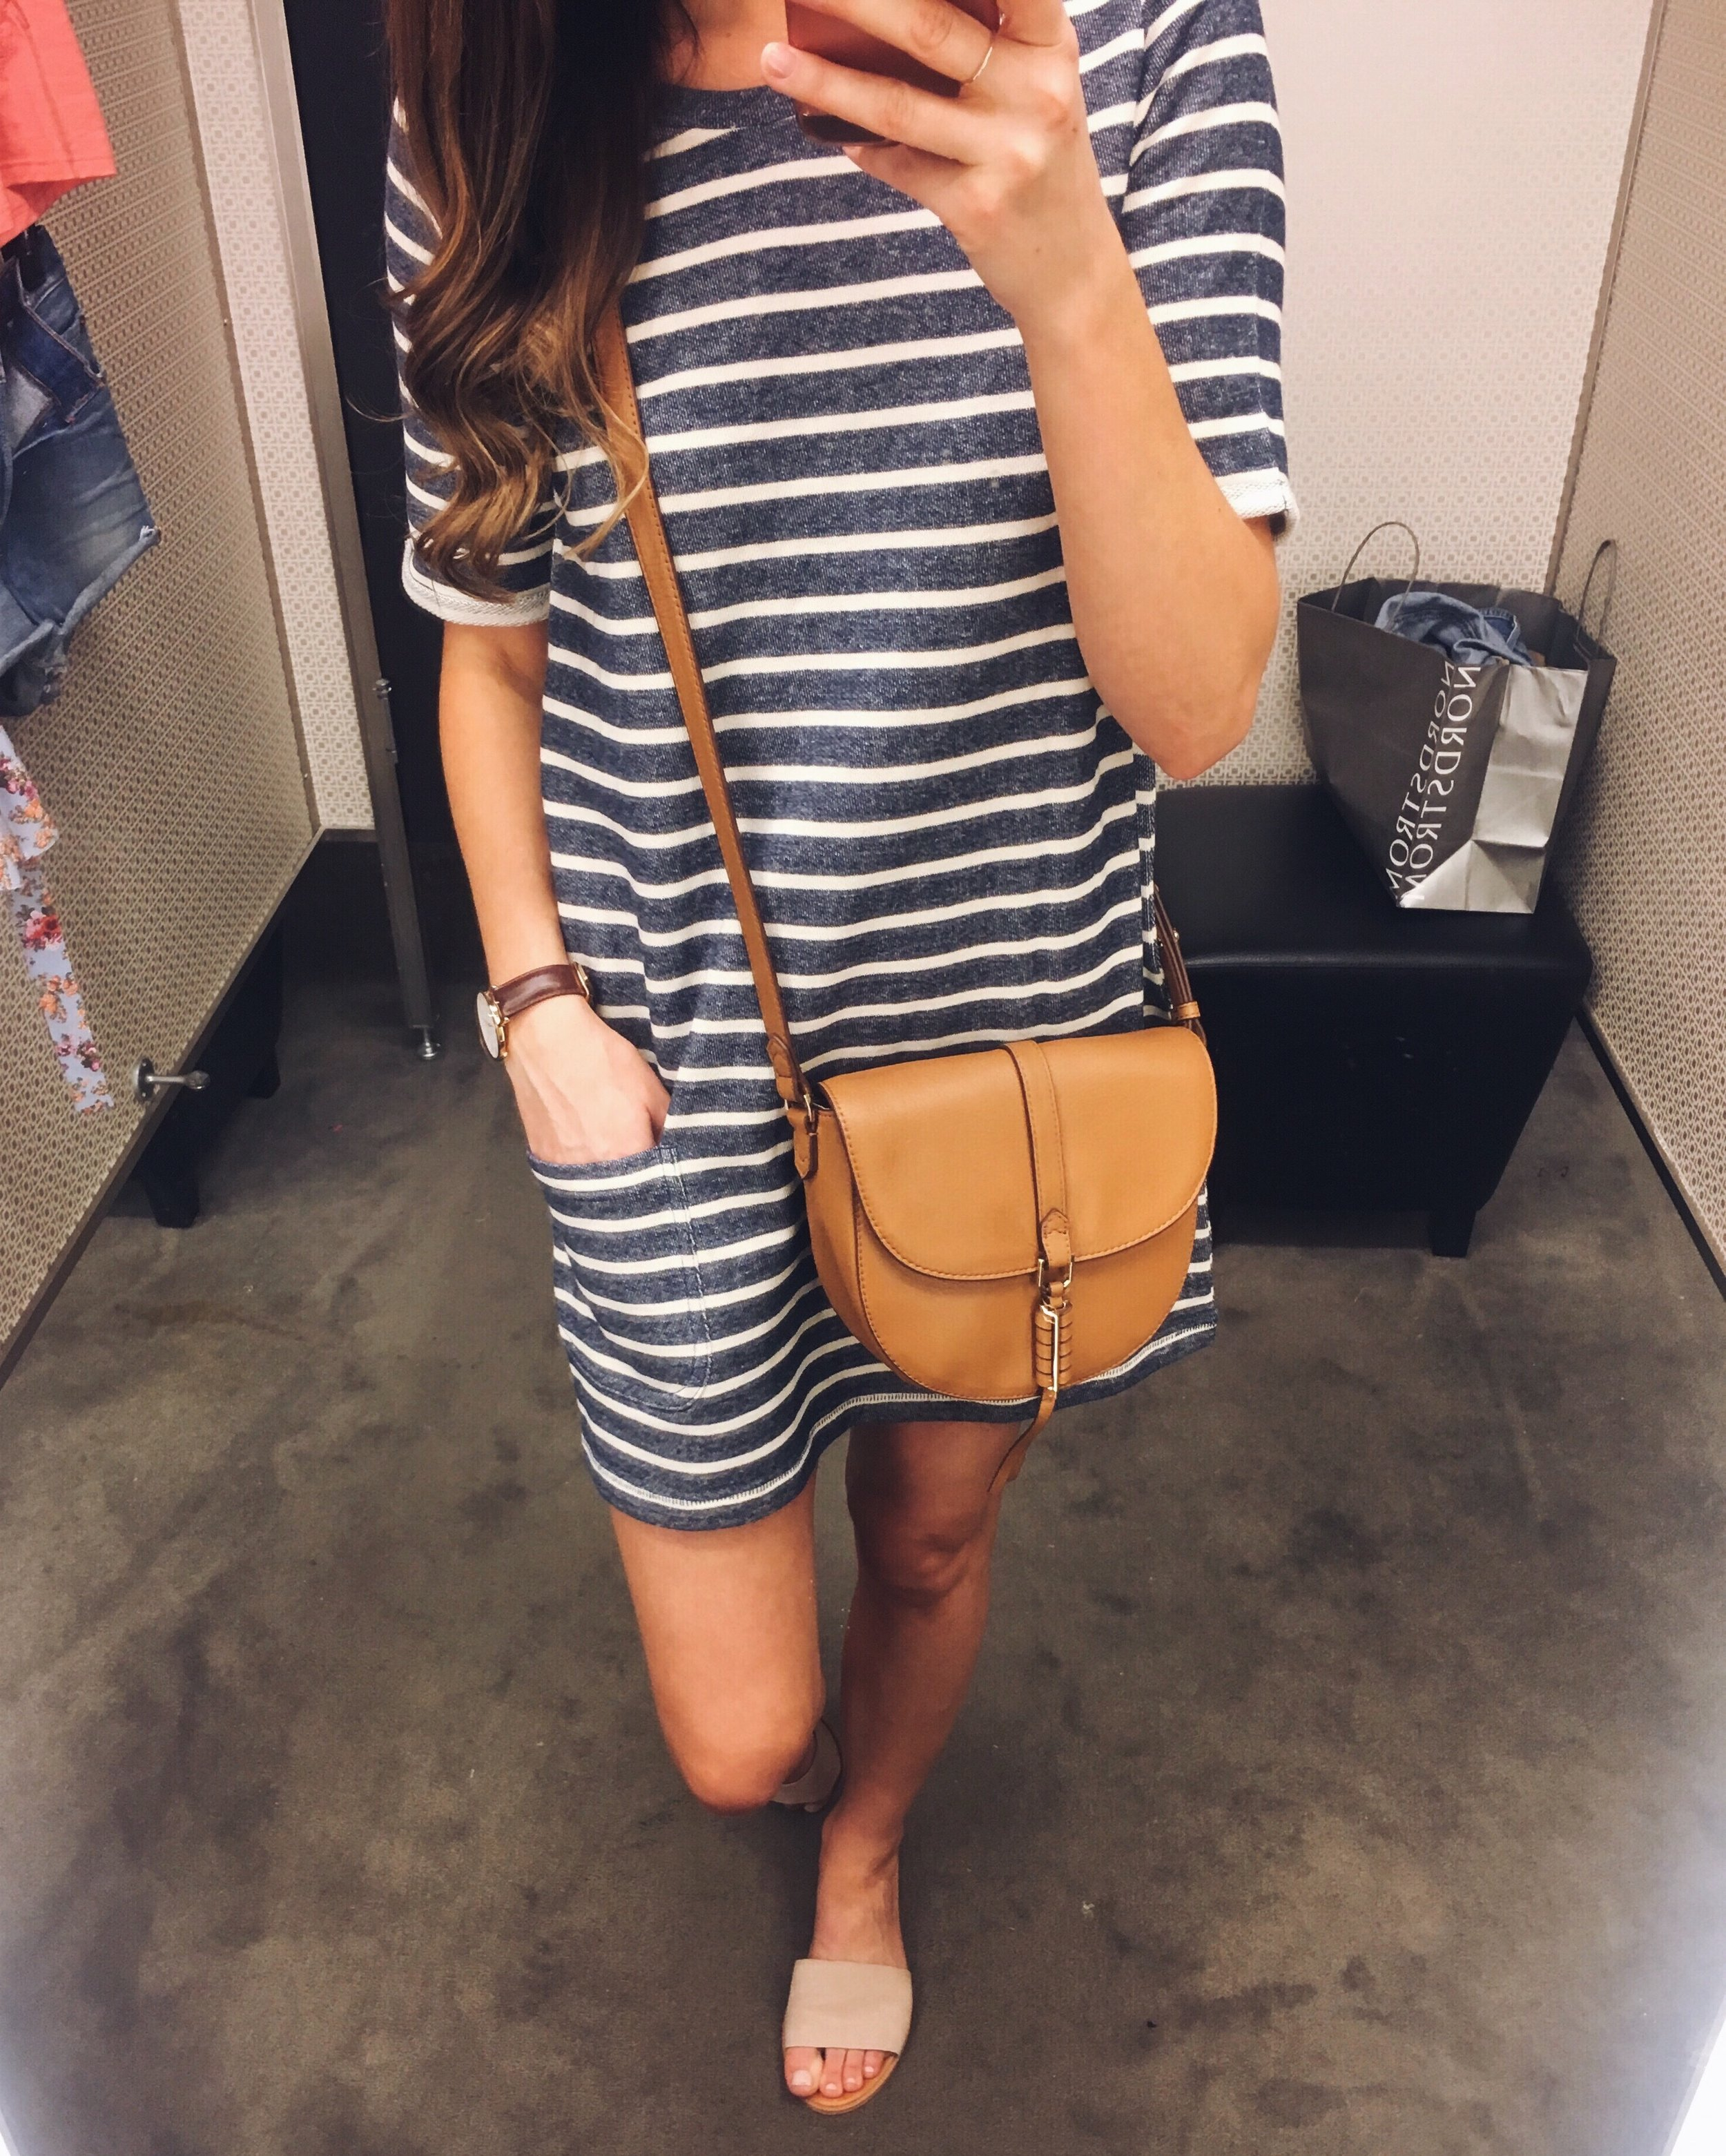 French Connection Dress  |  Nordstrom Slides  |  Stella & Dot Bag  c/o